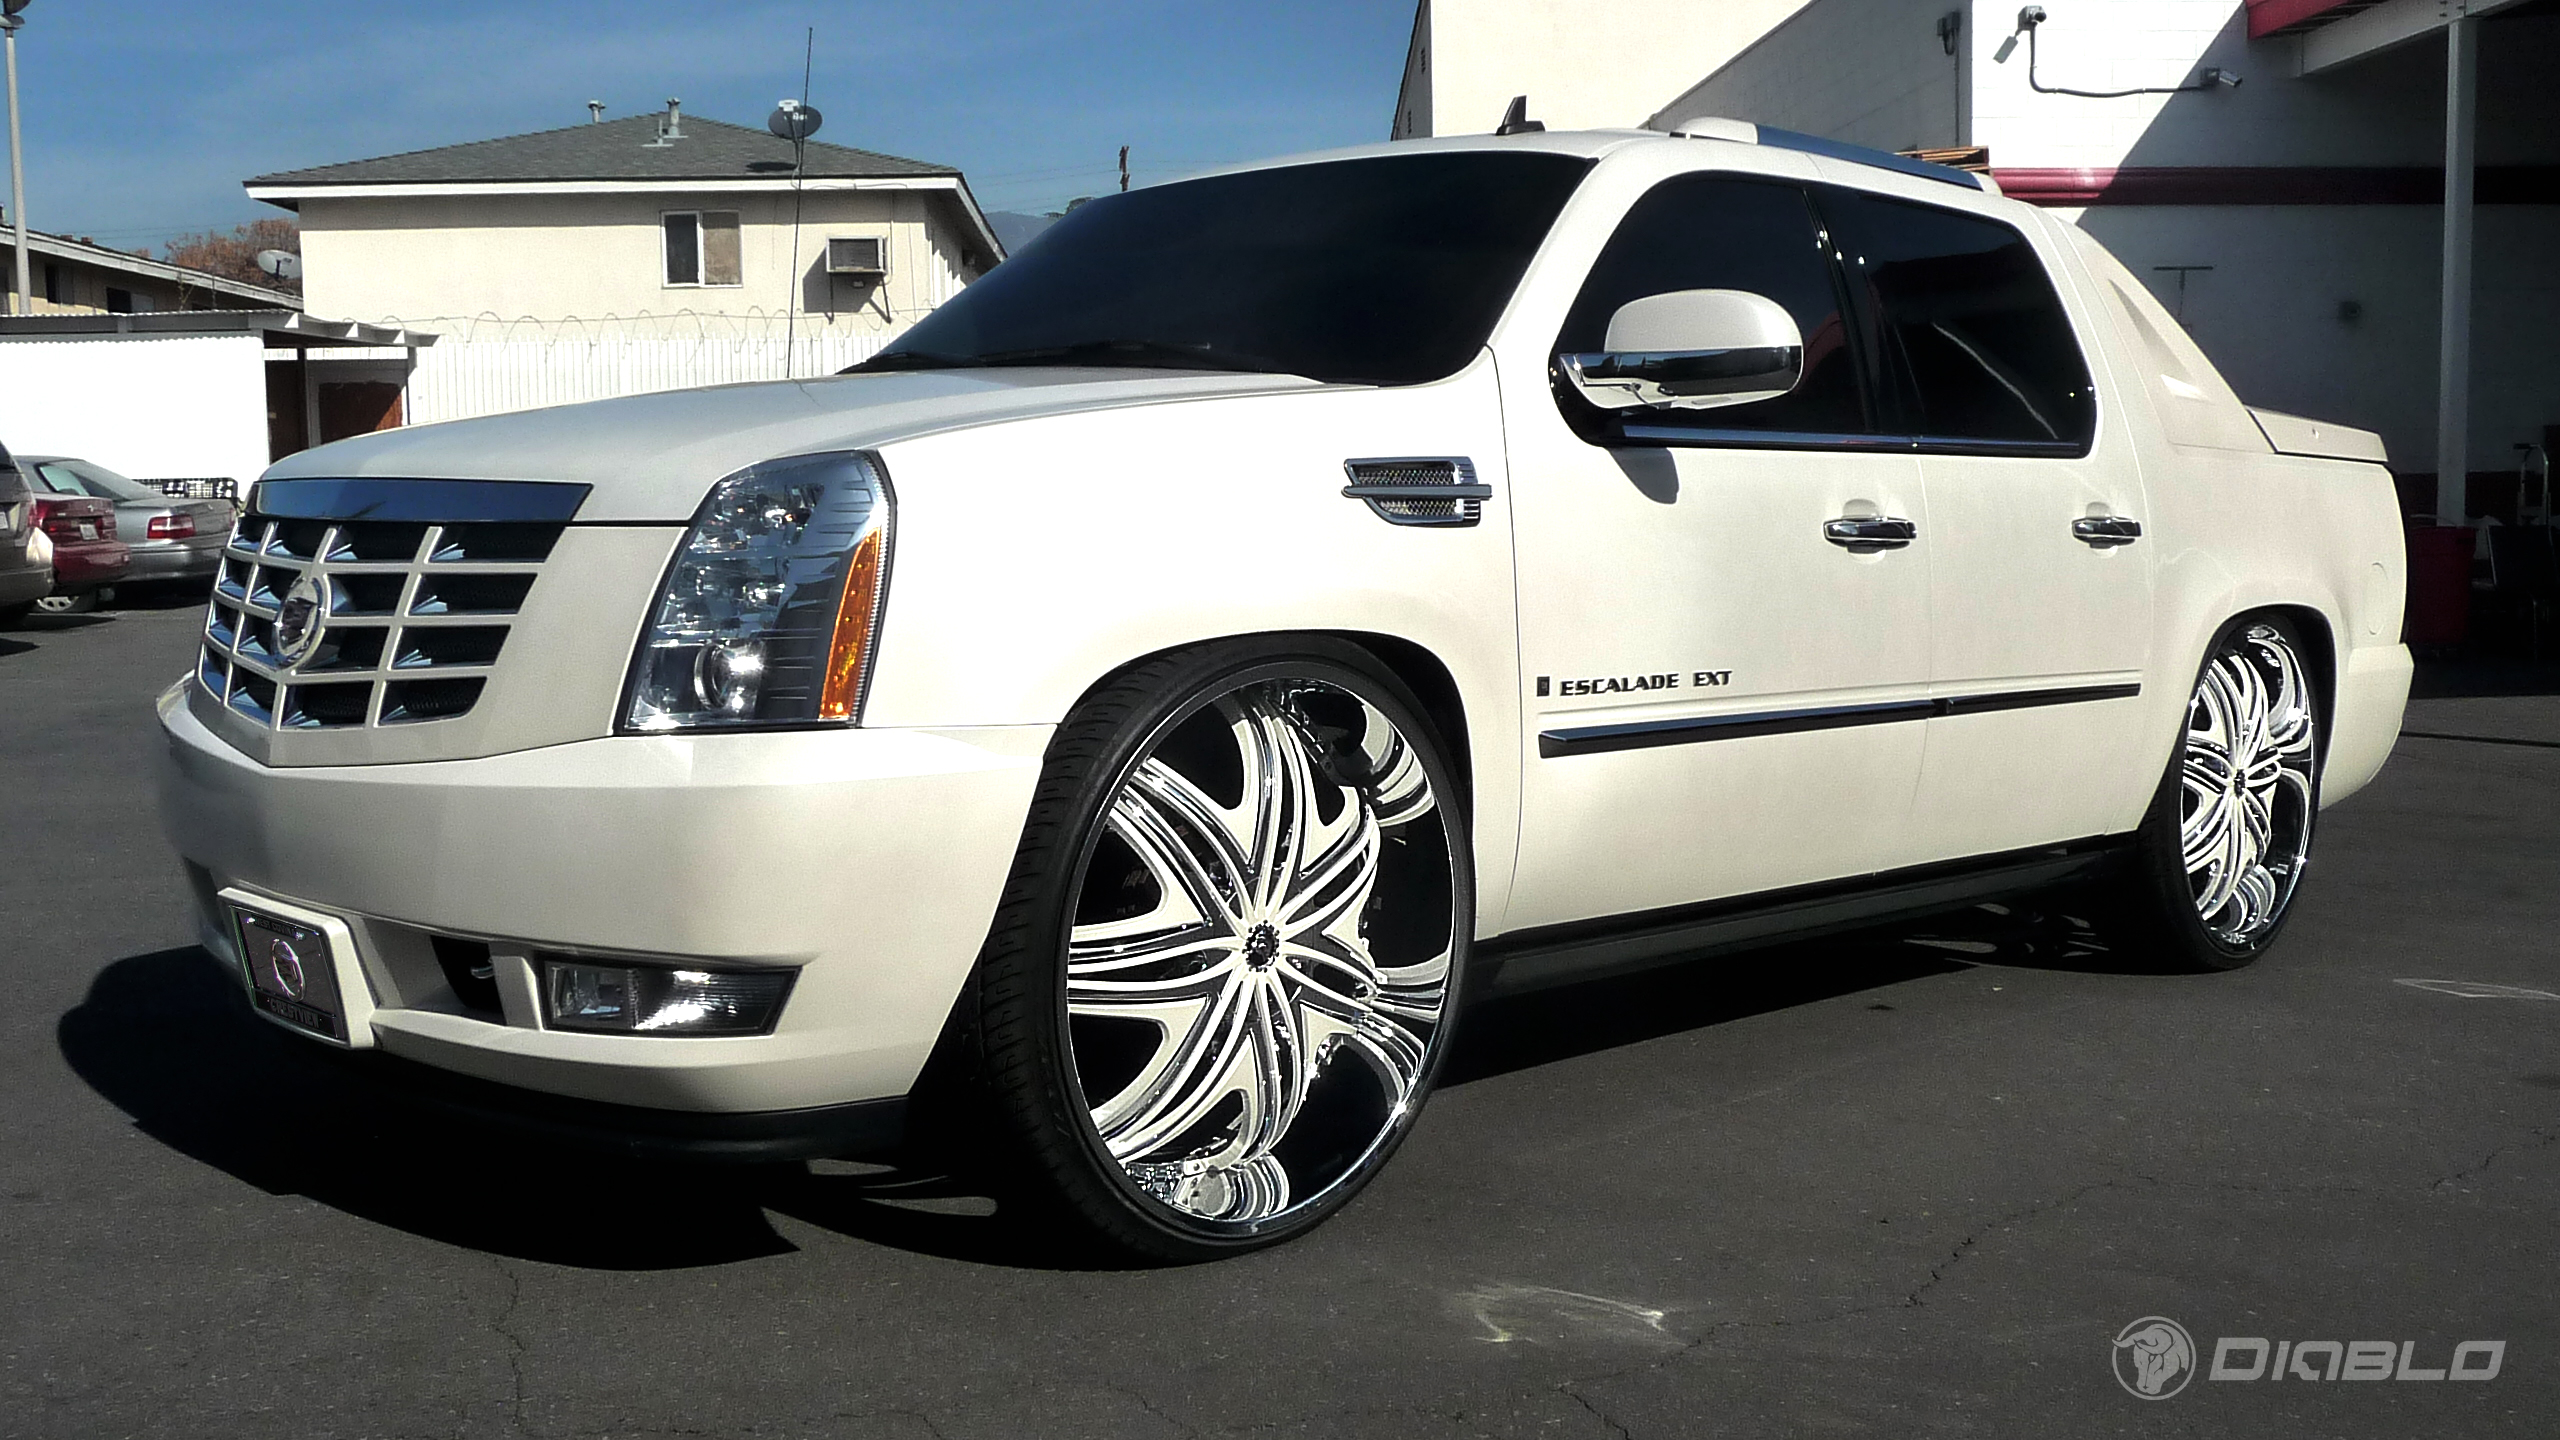 2010 Cadillac Escalade Ext On Diablo Wheels Rides Magazine